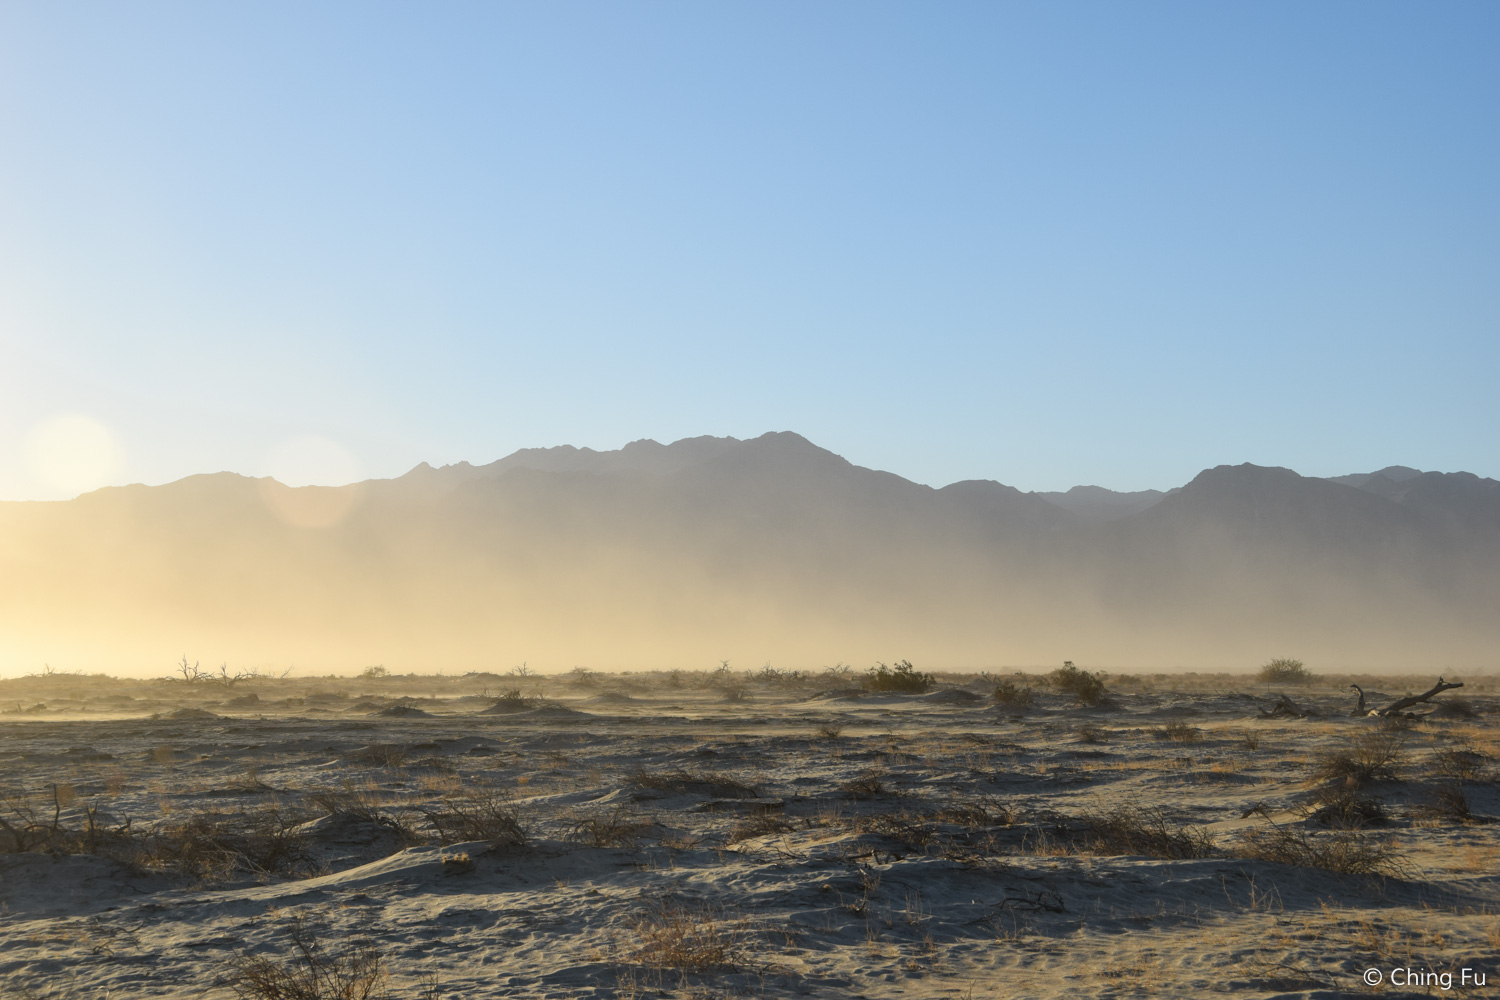 Being that we were in the desert, we did experience a couple of dust storms.